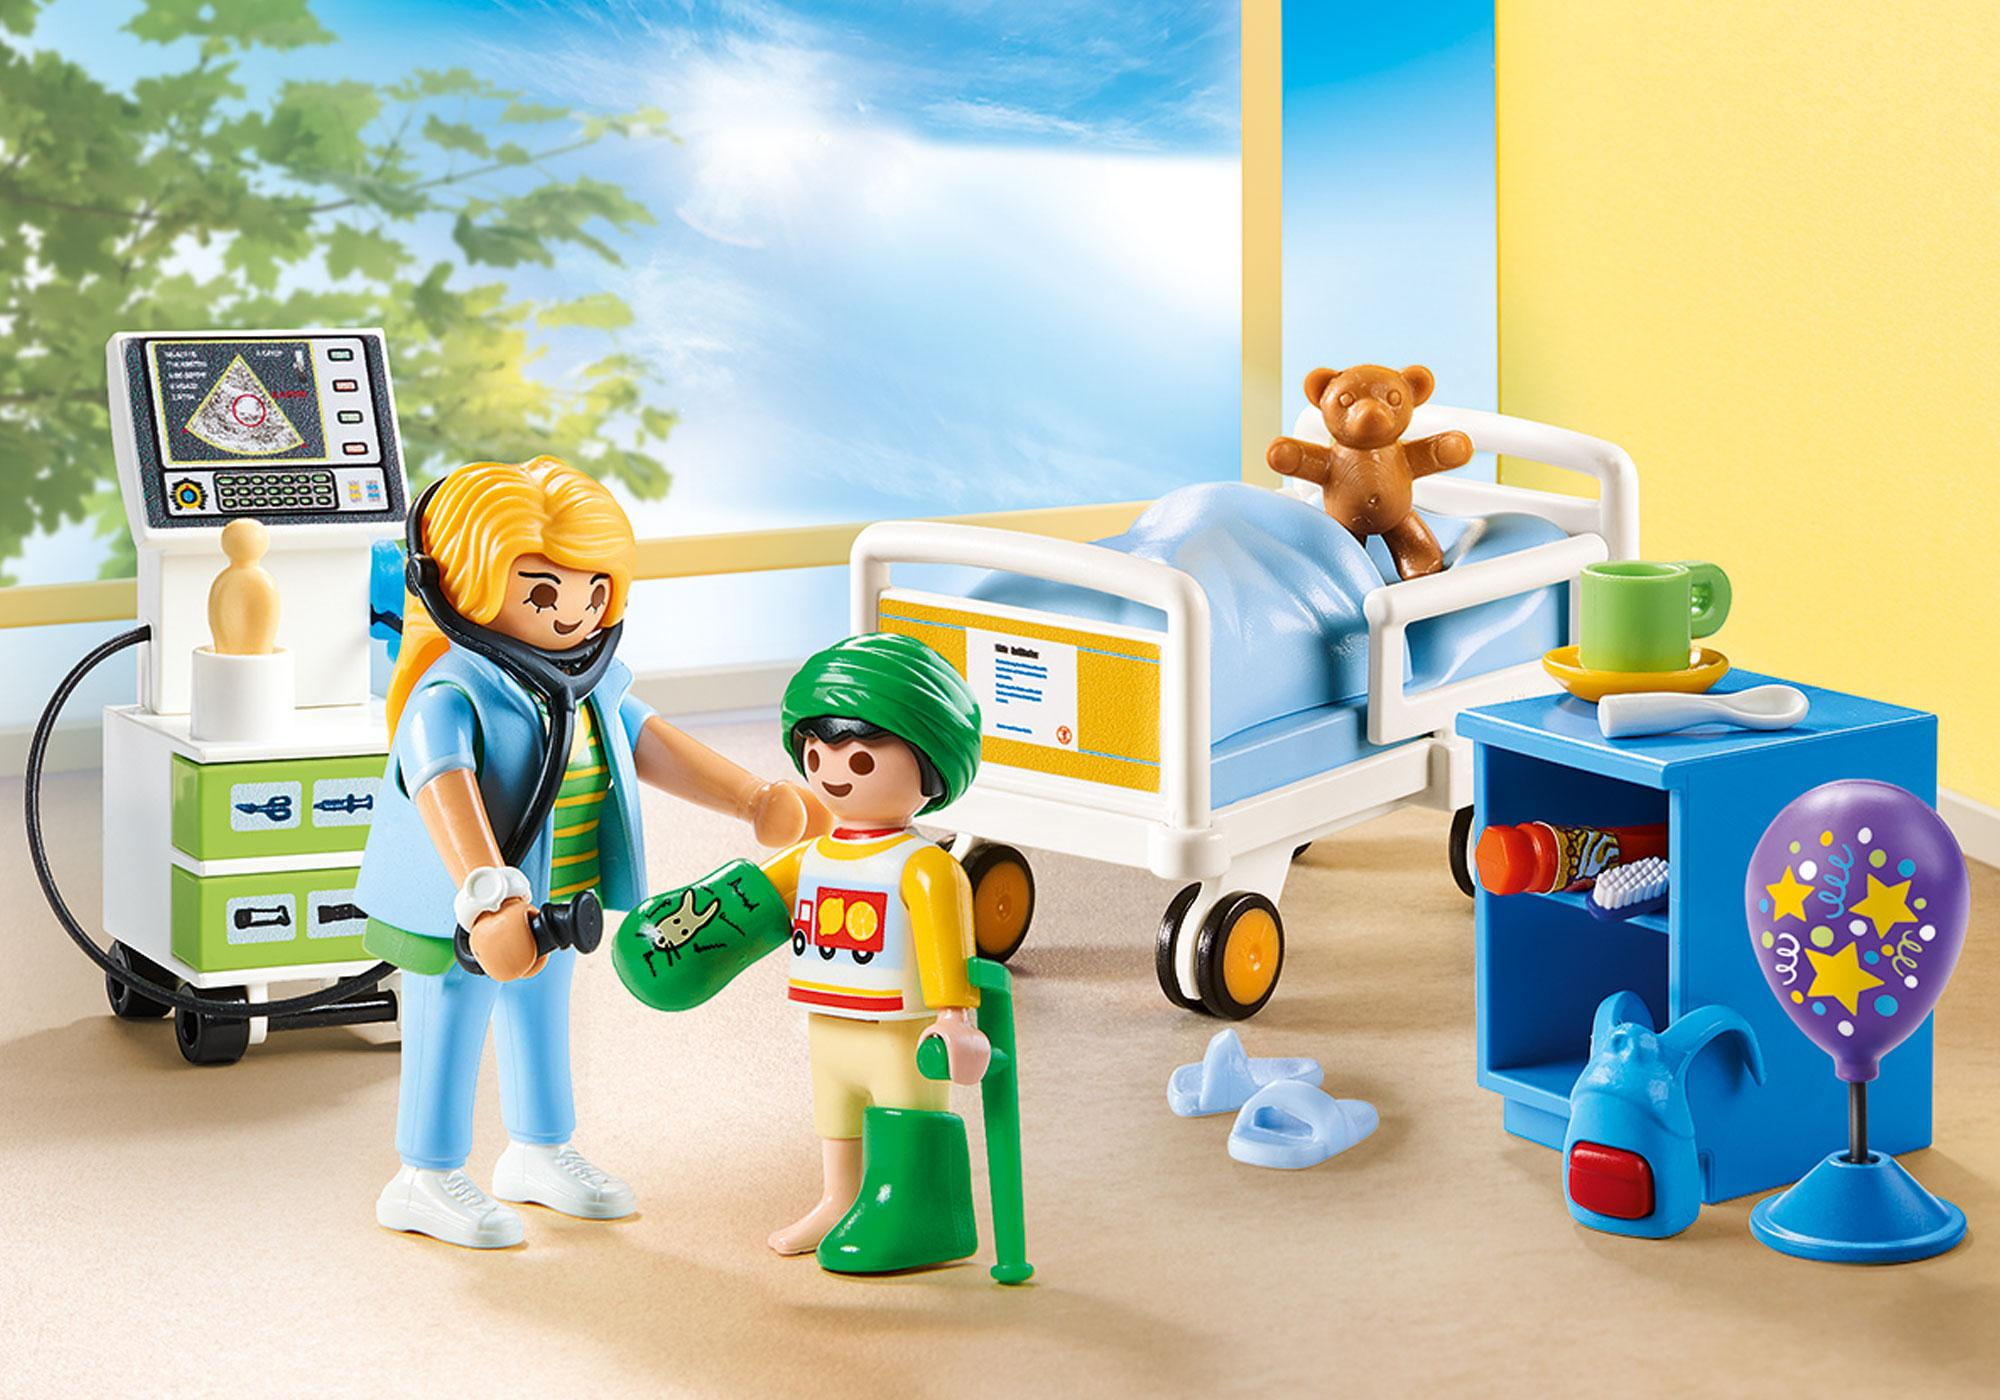 http://media.playmobil.com/i/playmobil/70192_product_detail/Children's Hospital Room